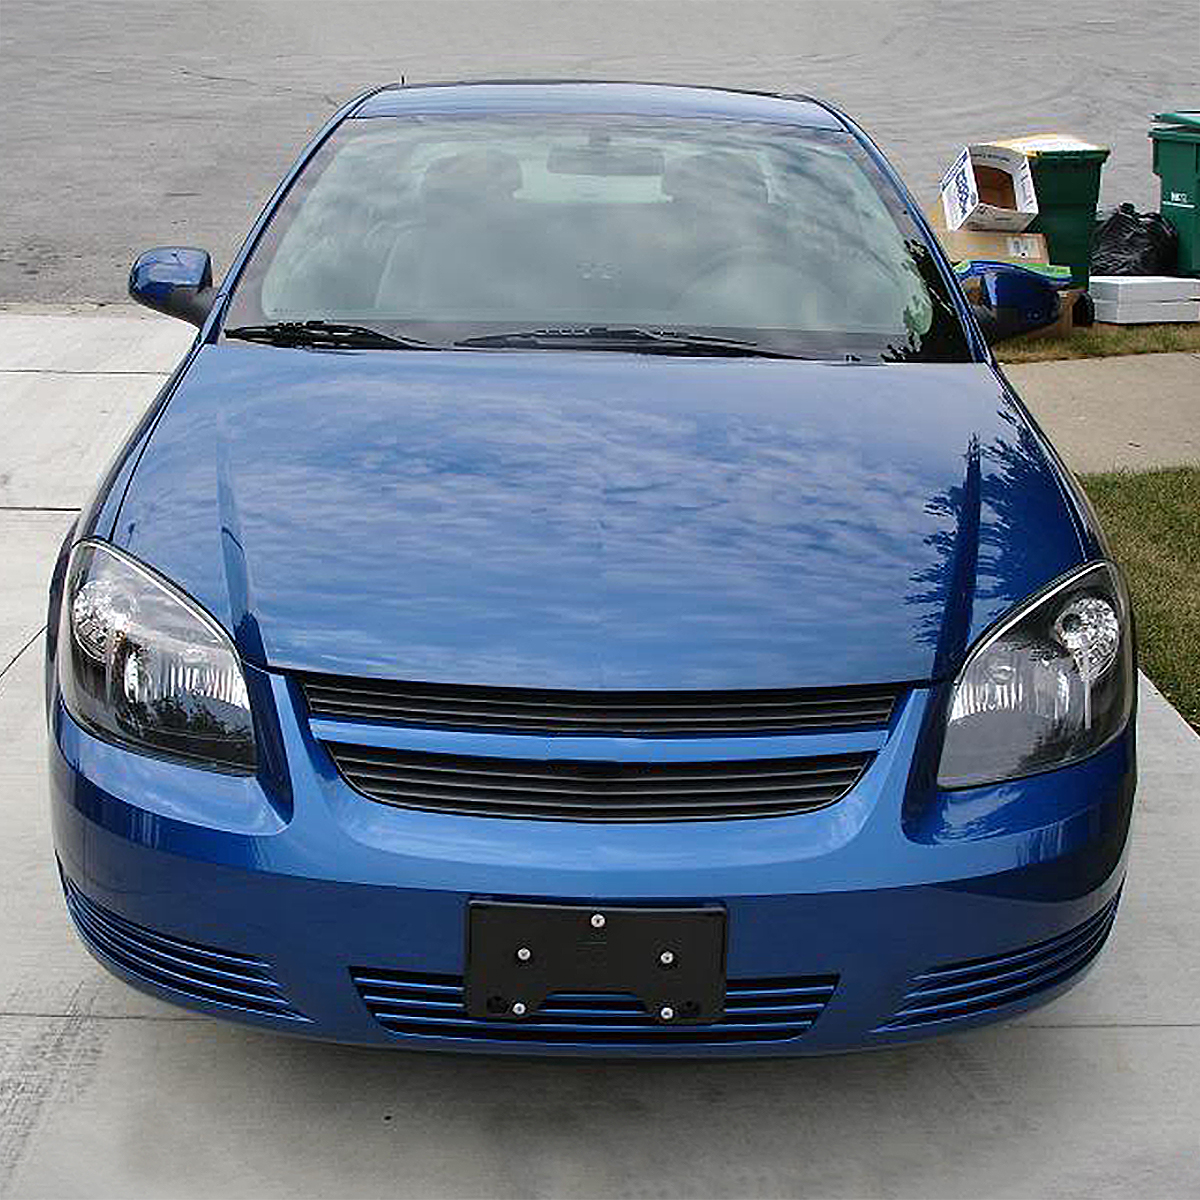 Chevrolet Cobalt Wiring Diagram Get Free Image About Wiring Diagram